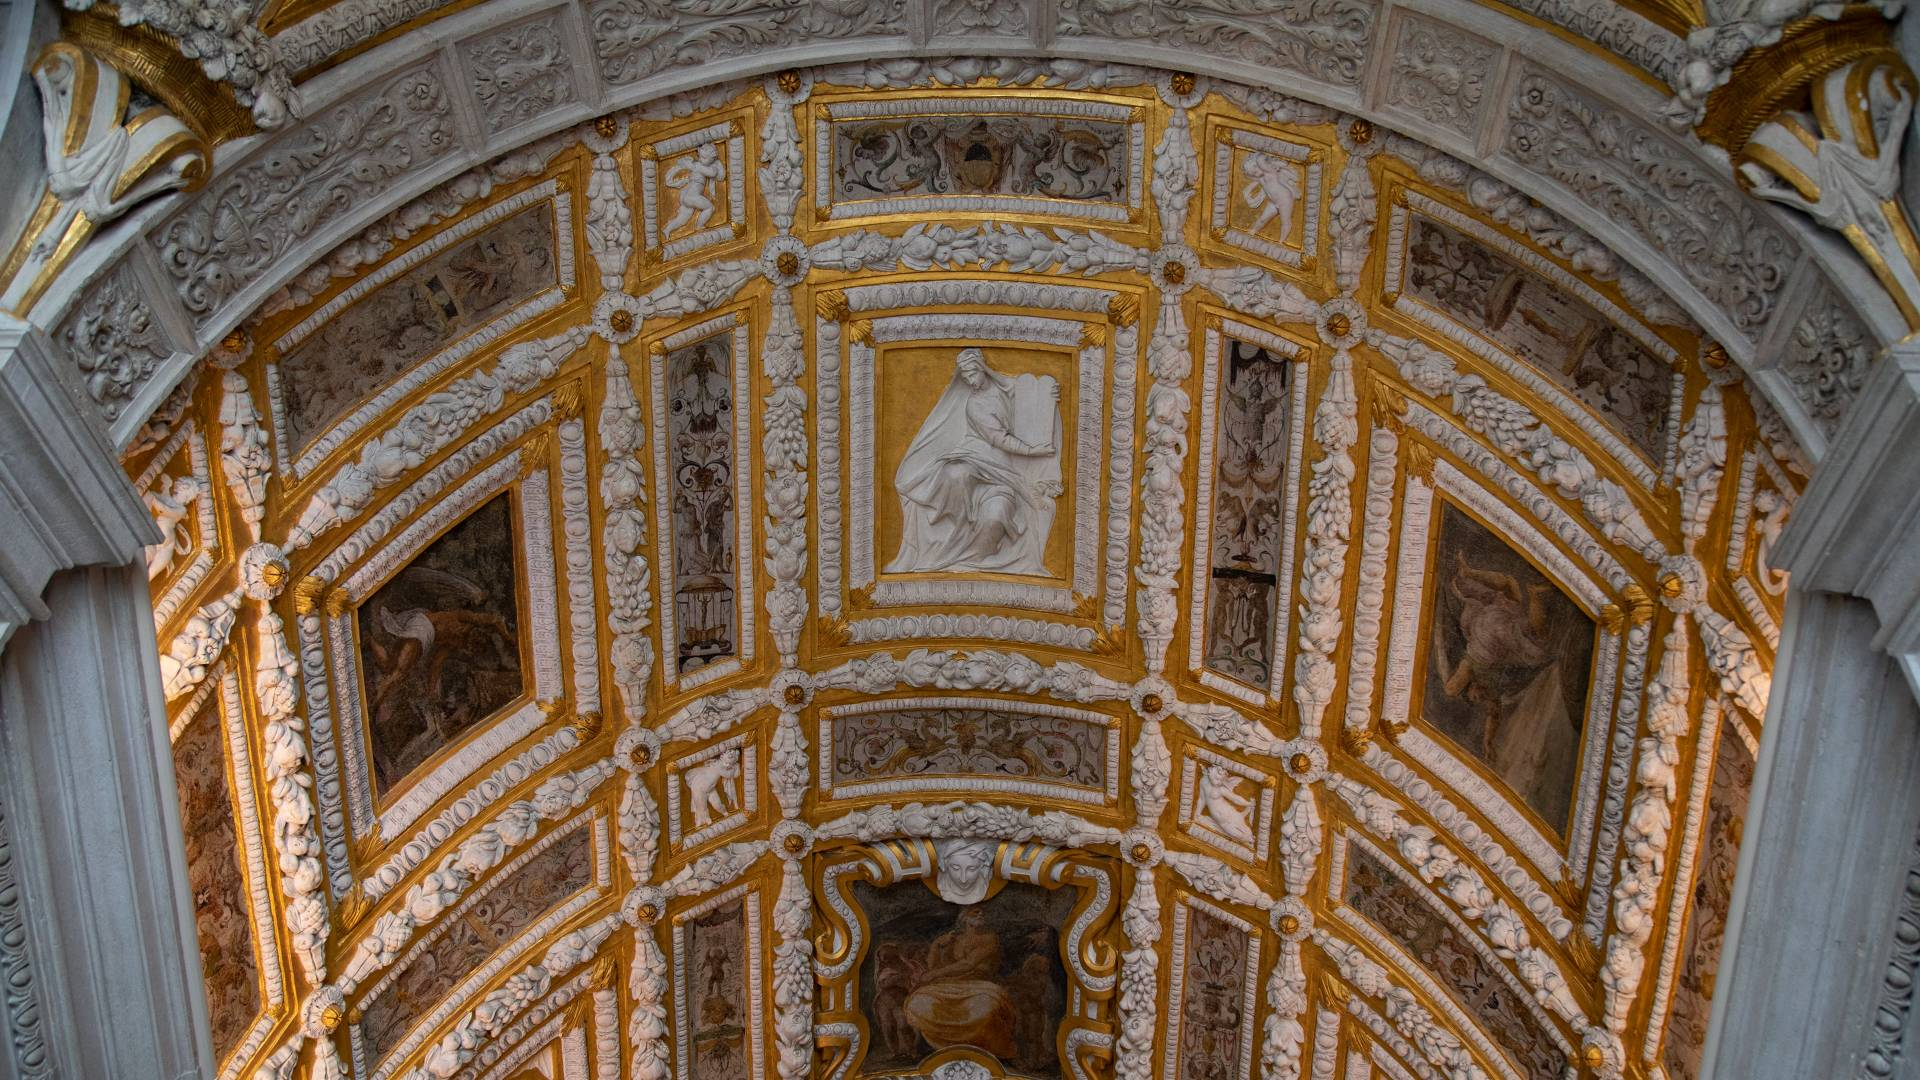 Detail of ceiling in the Doge's Palace in Venice